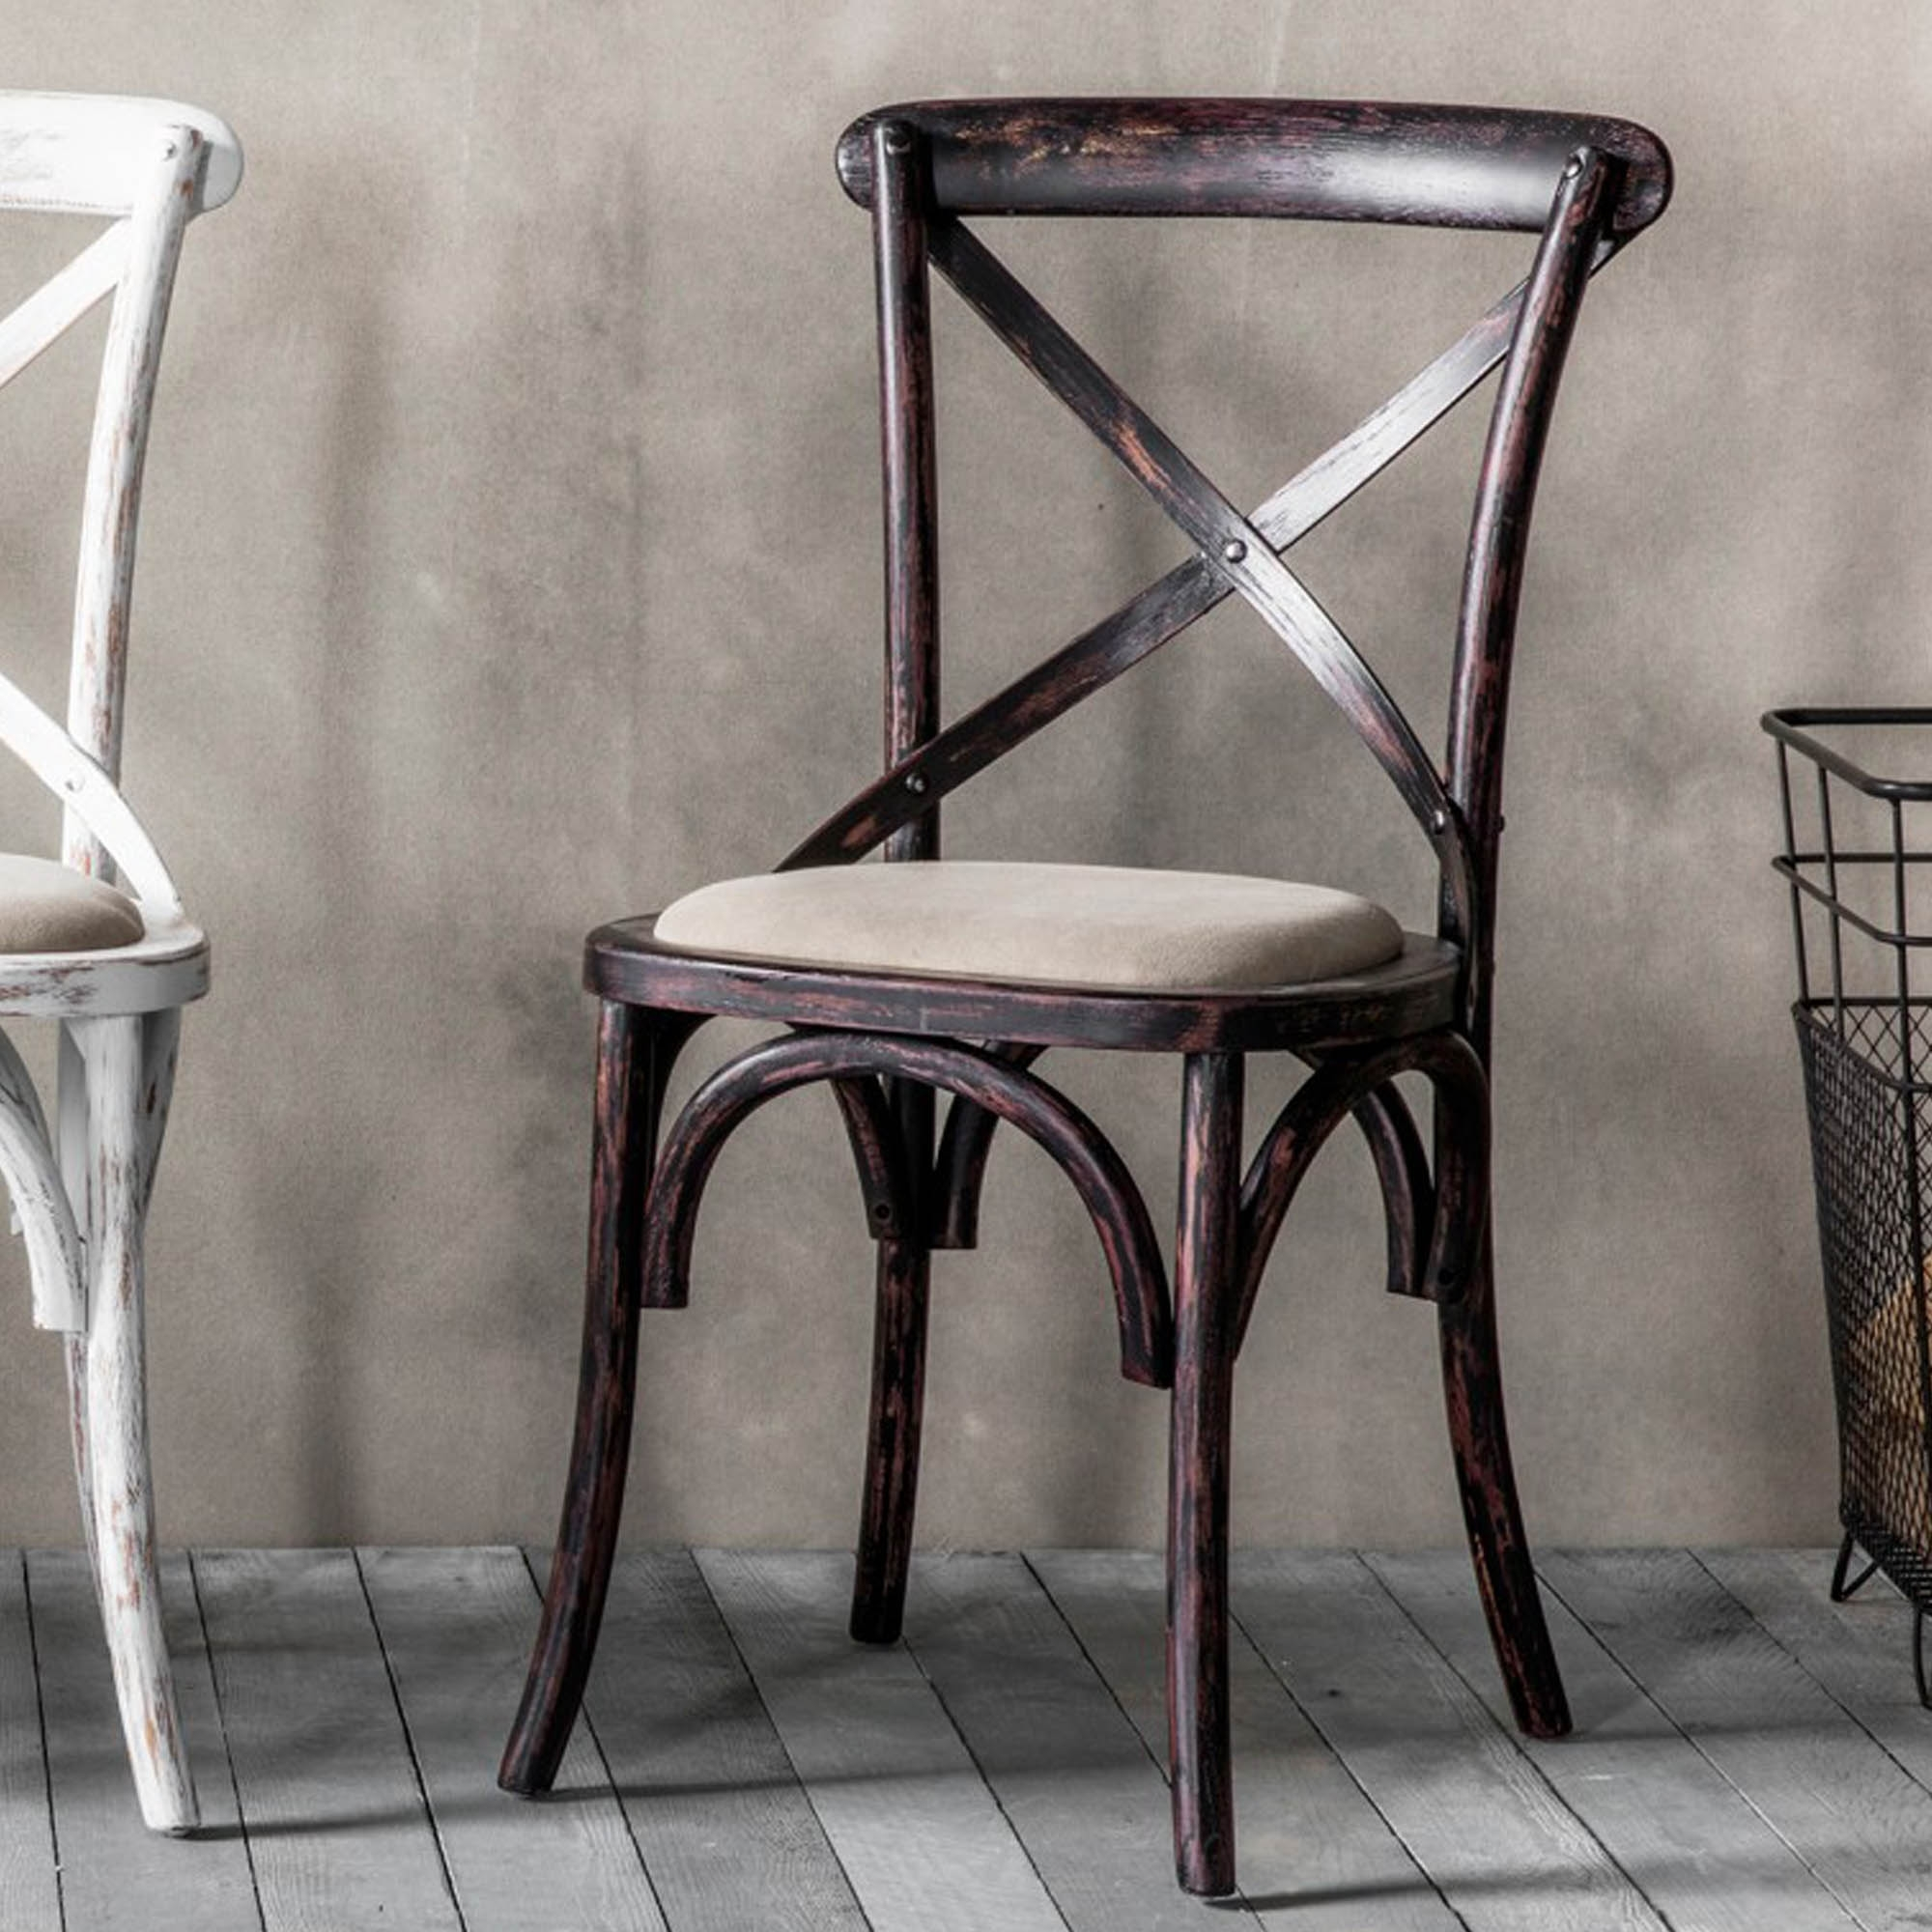 caf 2 black shabby chic chairs chairs homesdirect365 rh homesdirect365 co uk